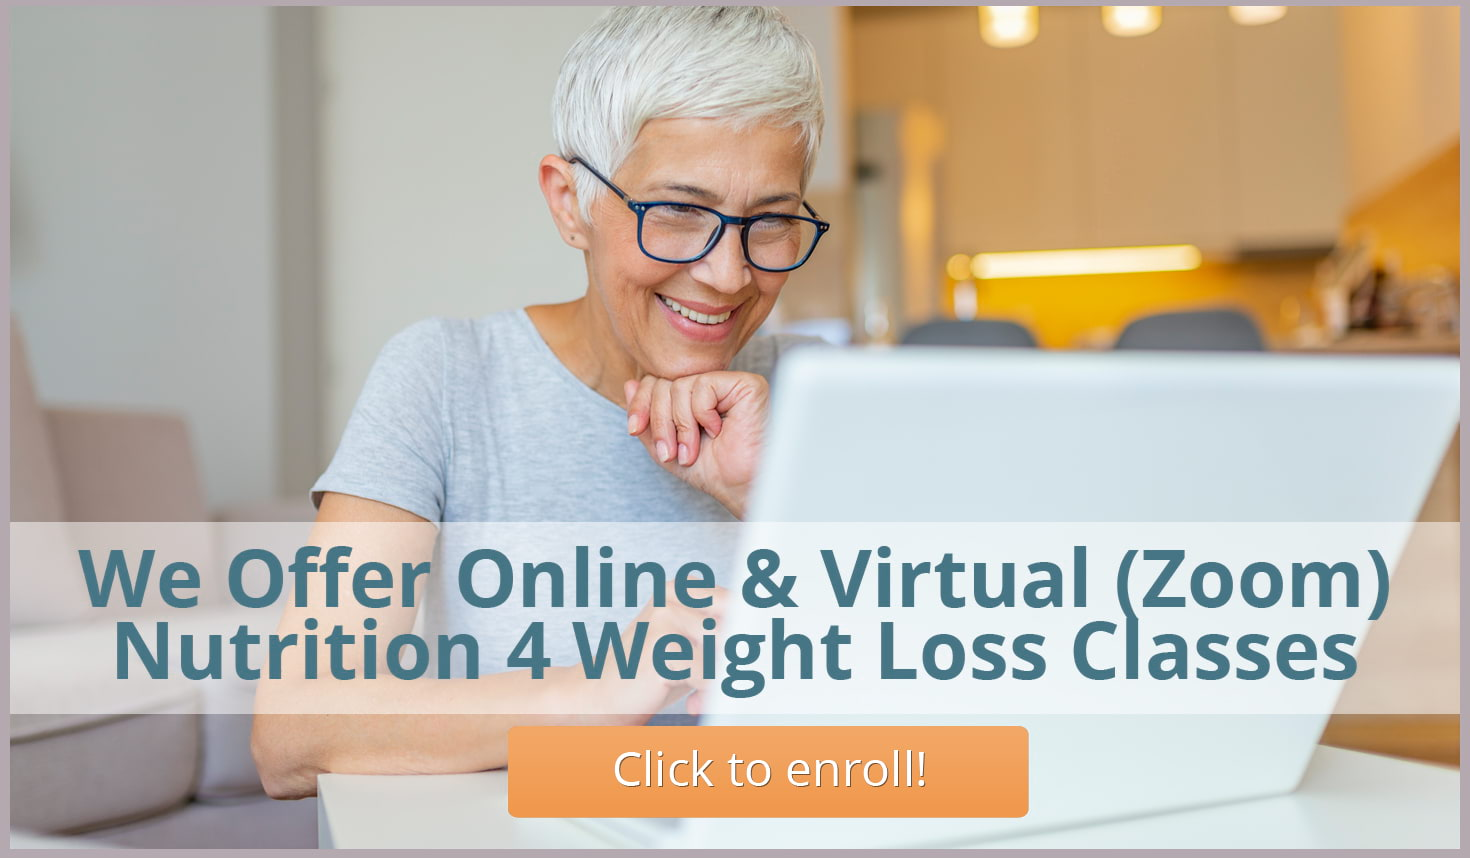 Online & Virtual Nutrition 4 Weight Loss